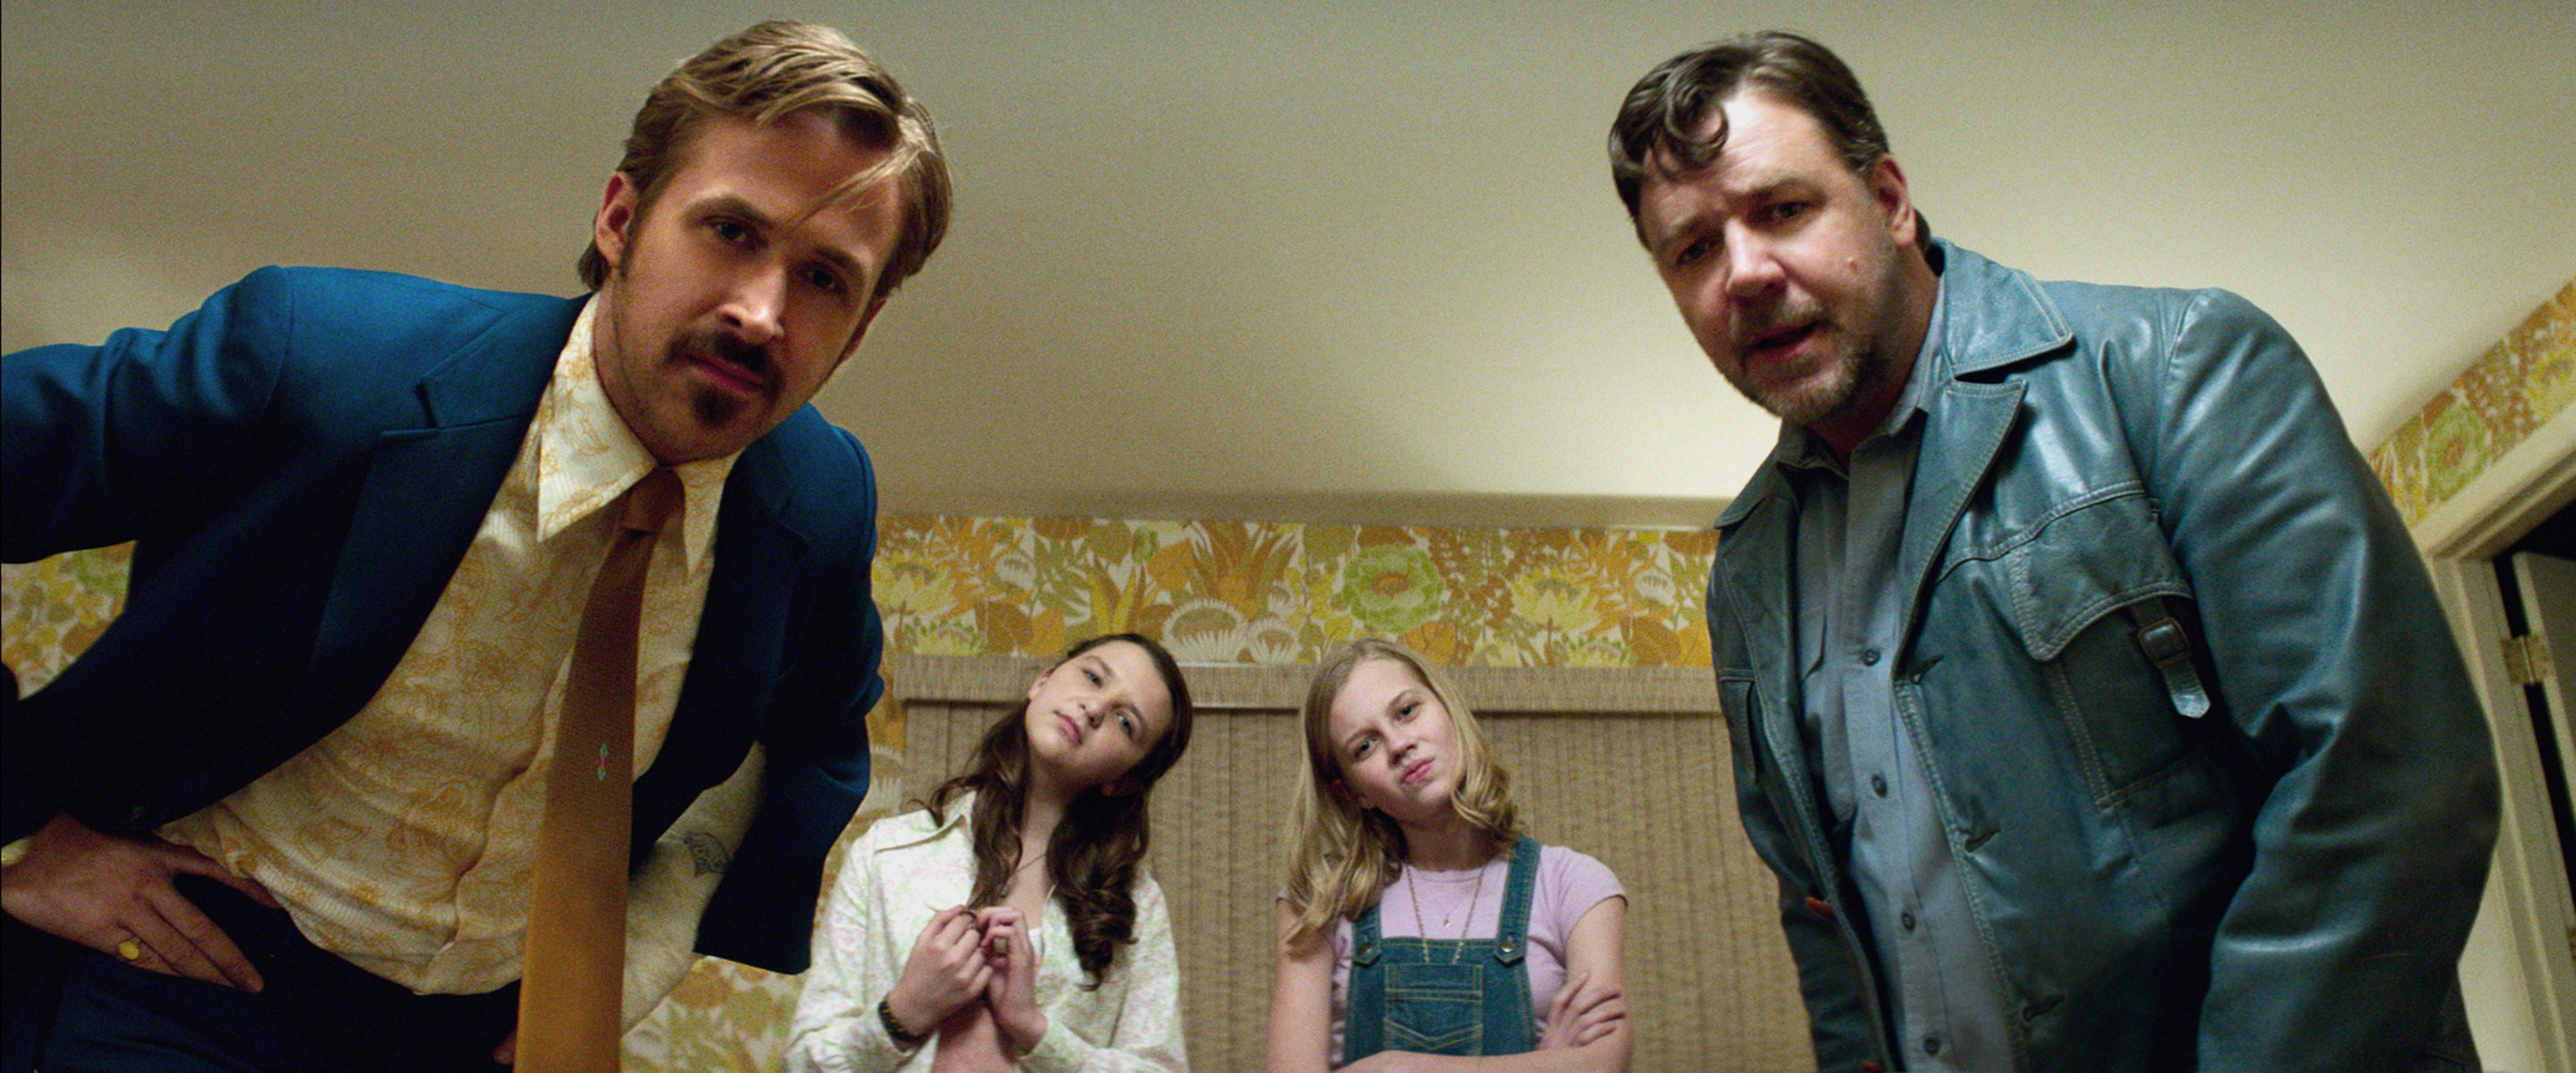 Cannes 2016: The Nice Guys (final) trailer